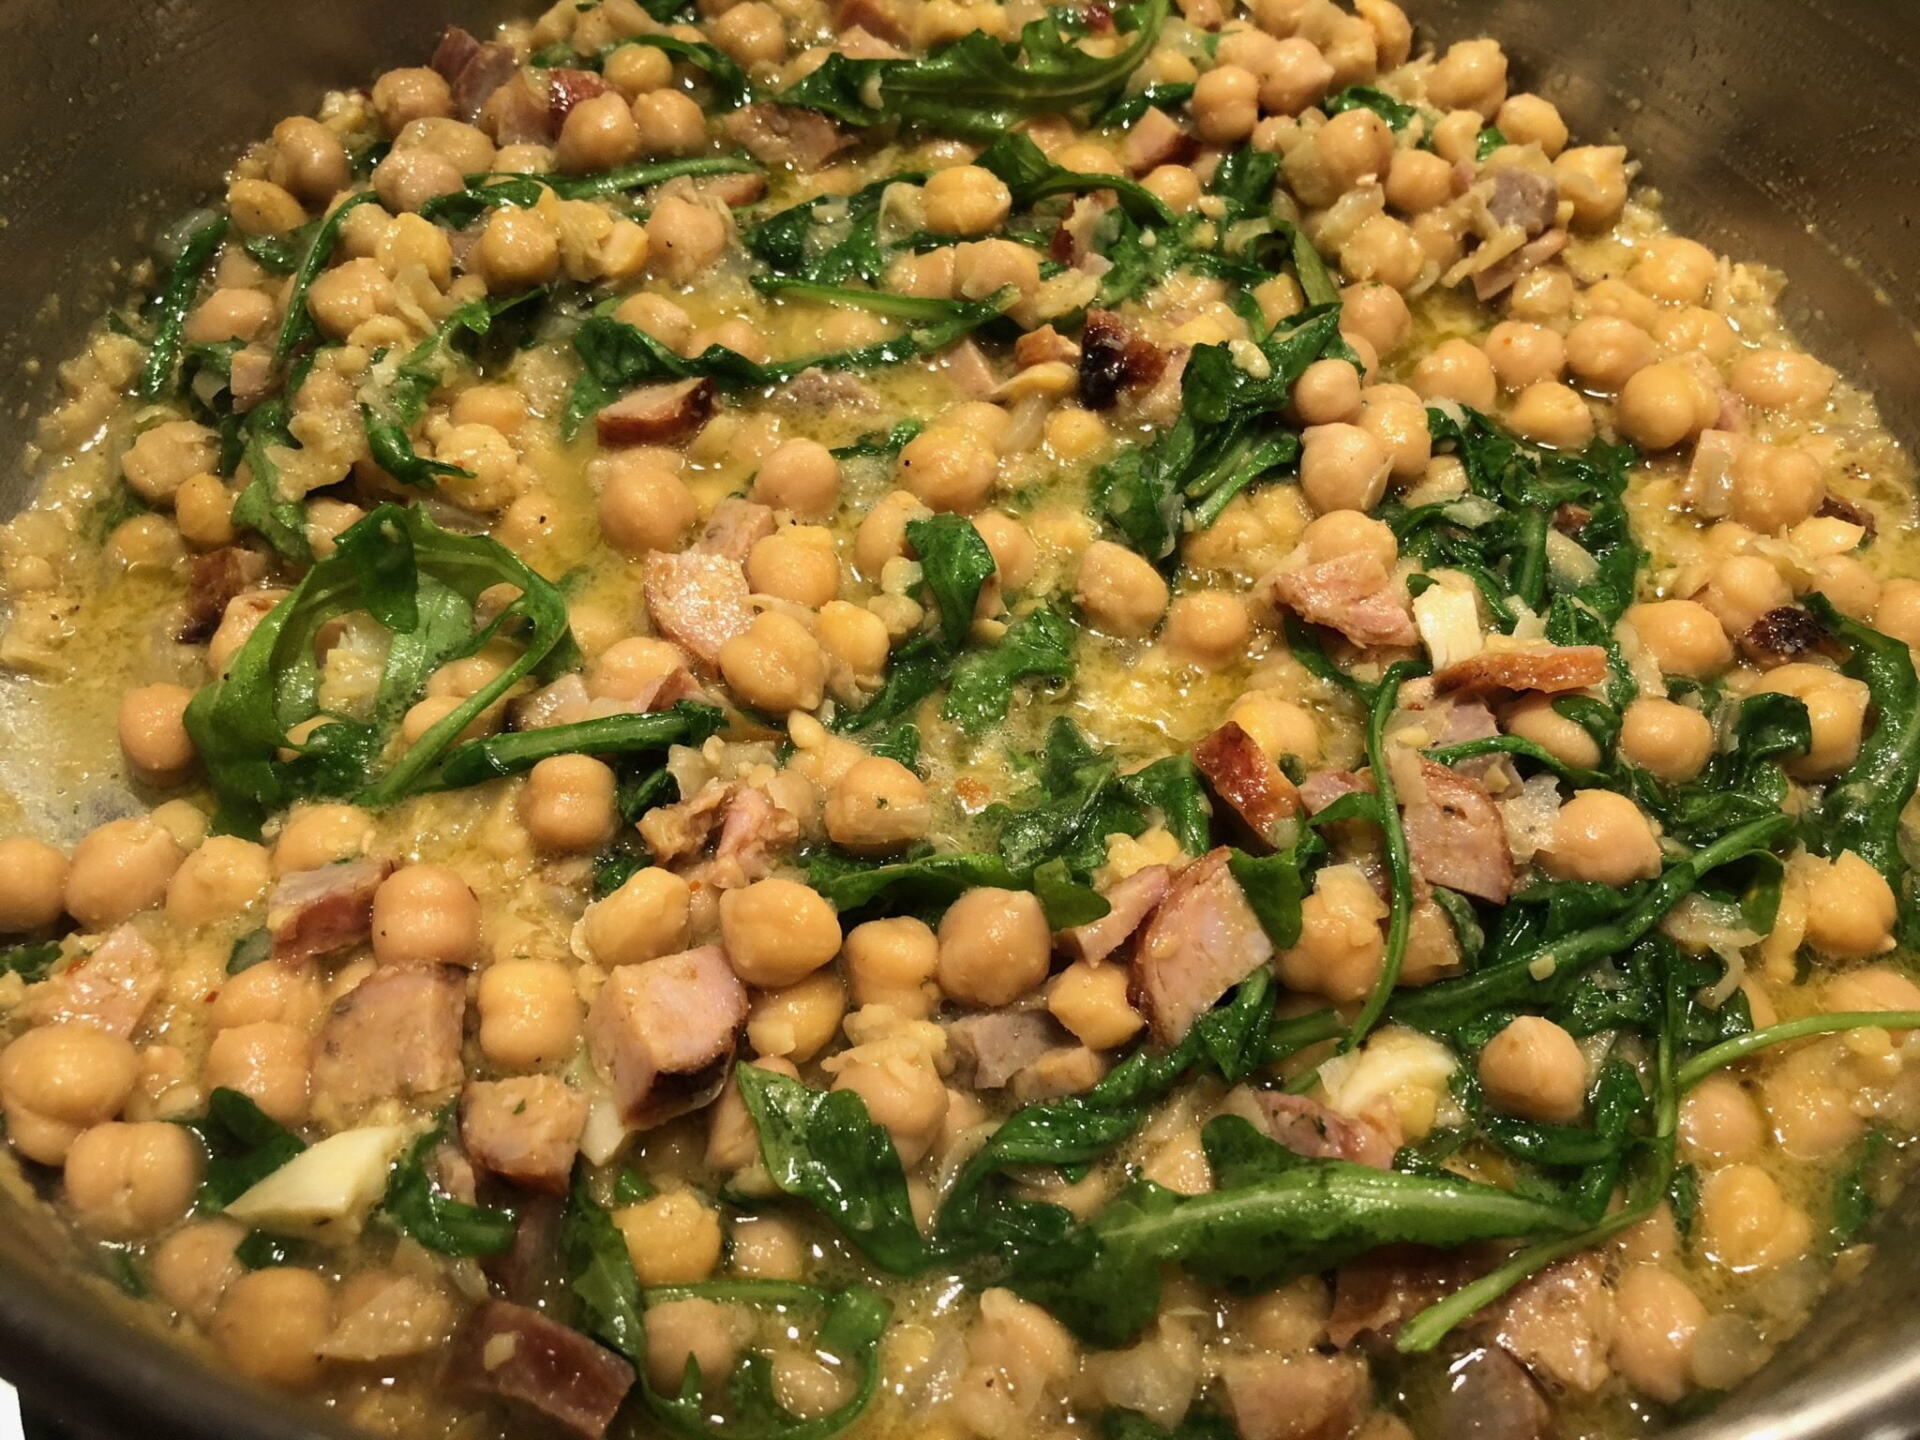 Chick peas, sausage and arugula cooking away